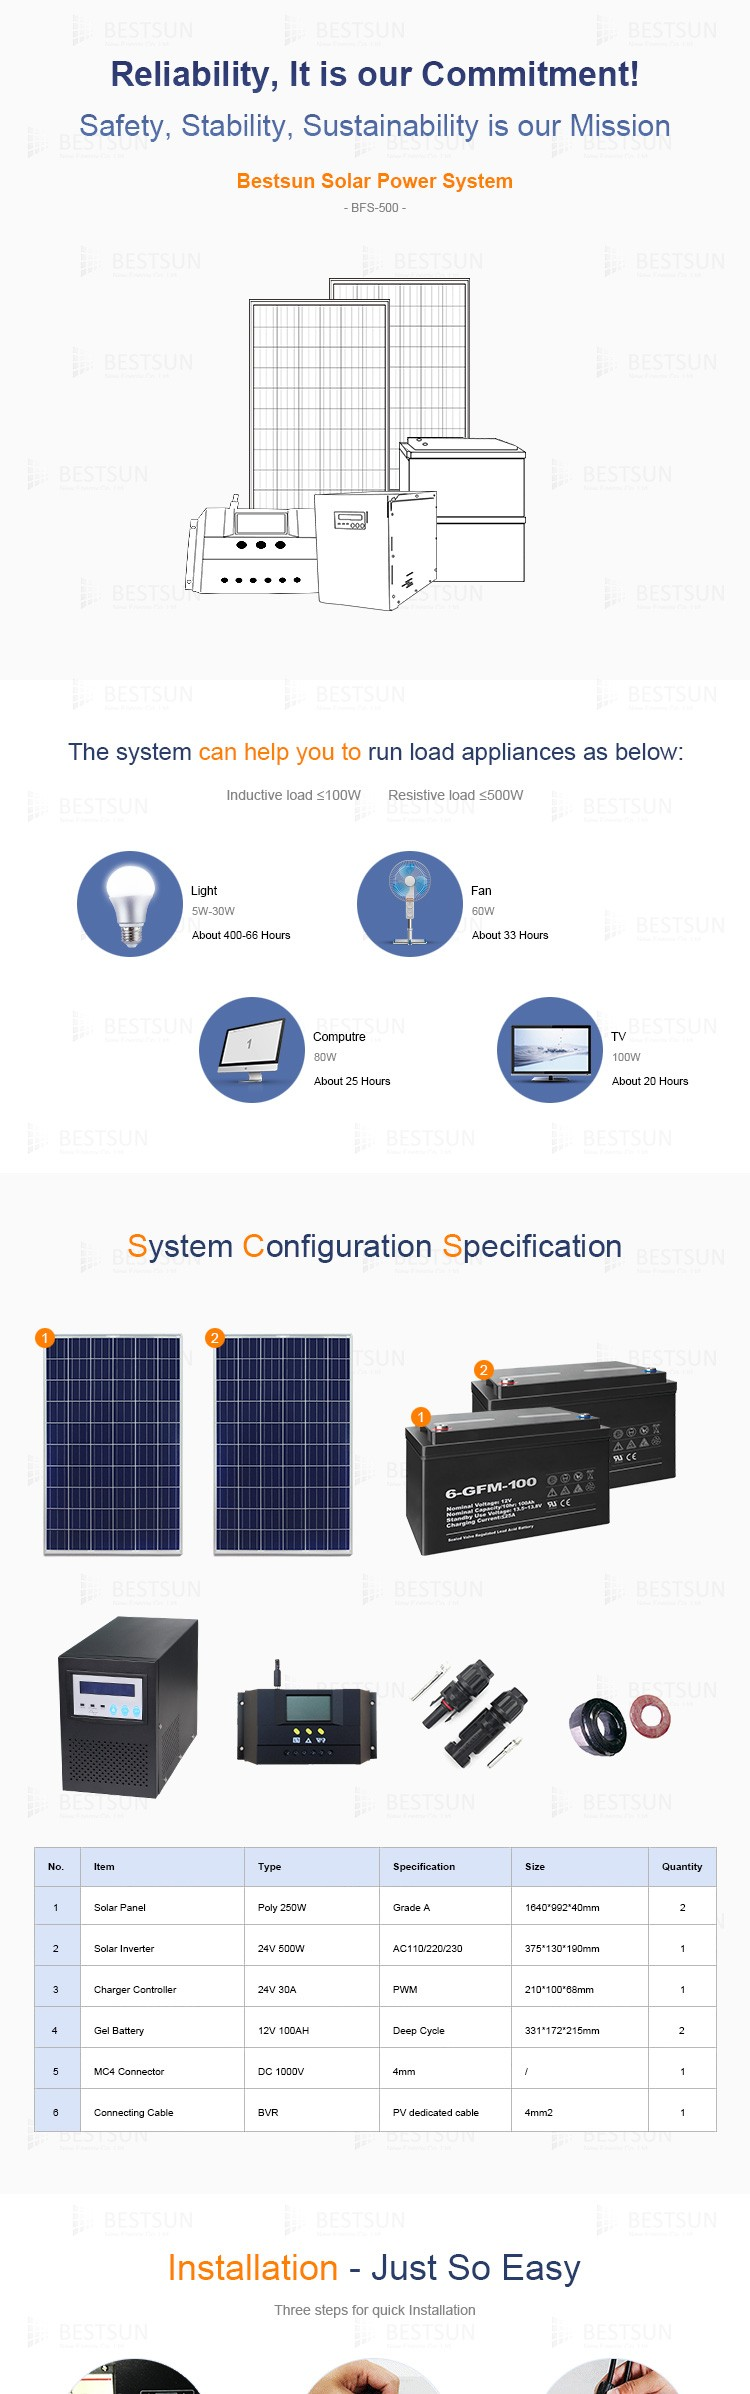 Bestsun 260W photovoltaic solar power bank factory design PV solar system kits 500w solar power supply off grid solar panel kit